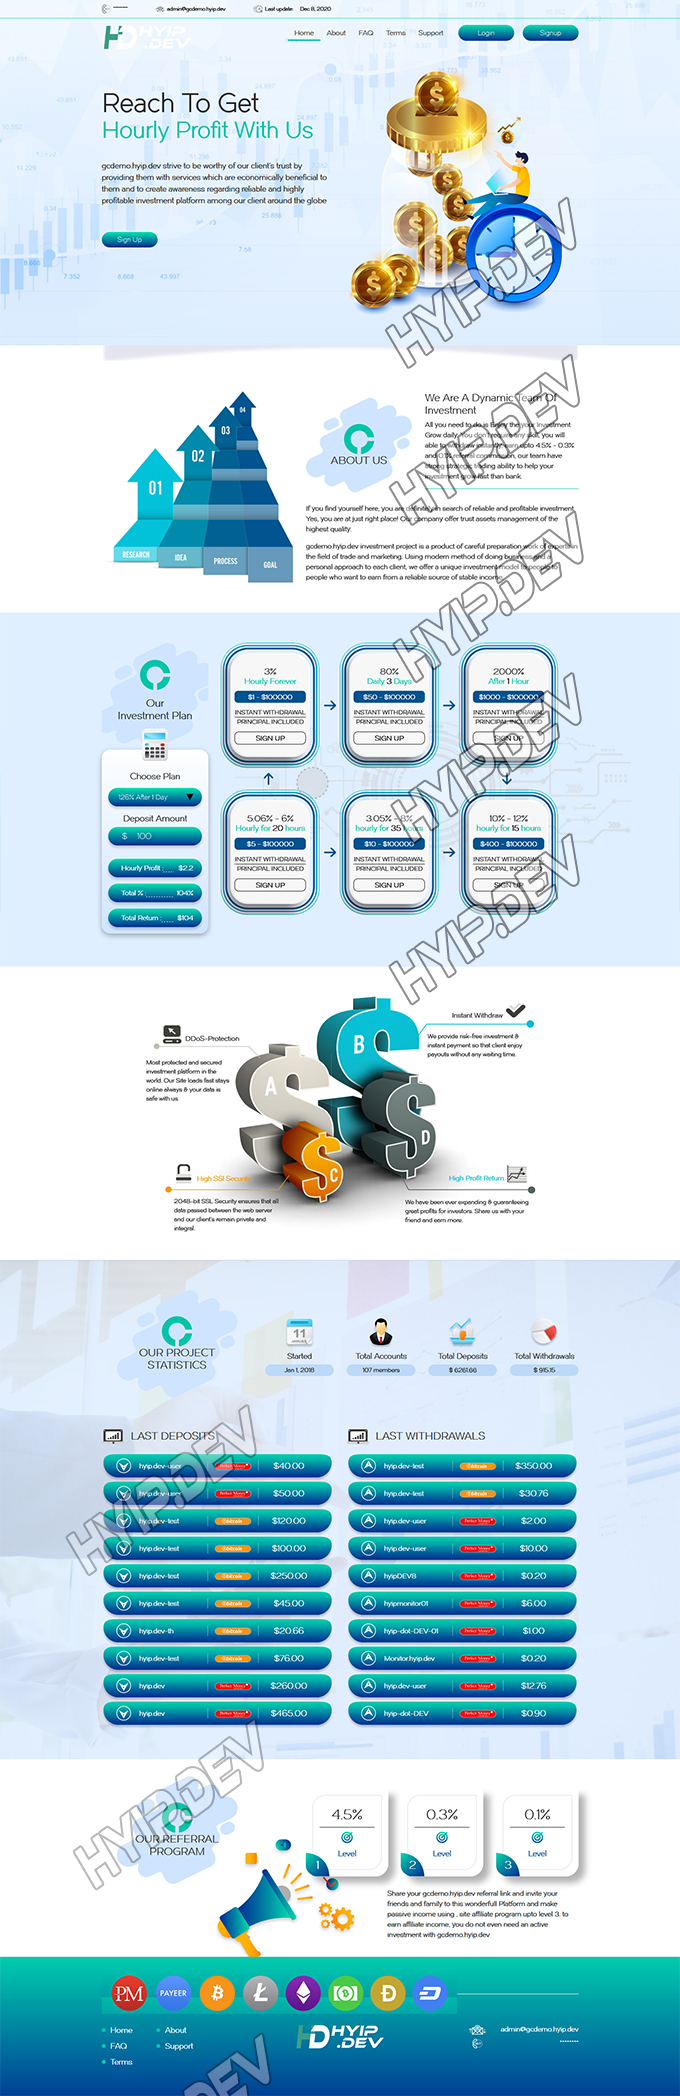 goldcoders hyip template no. 184, home page screenshot